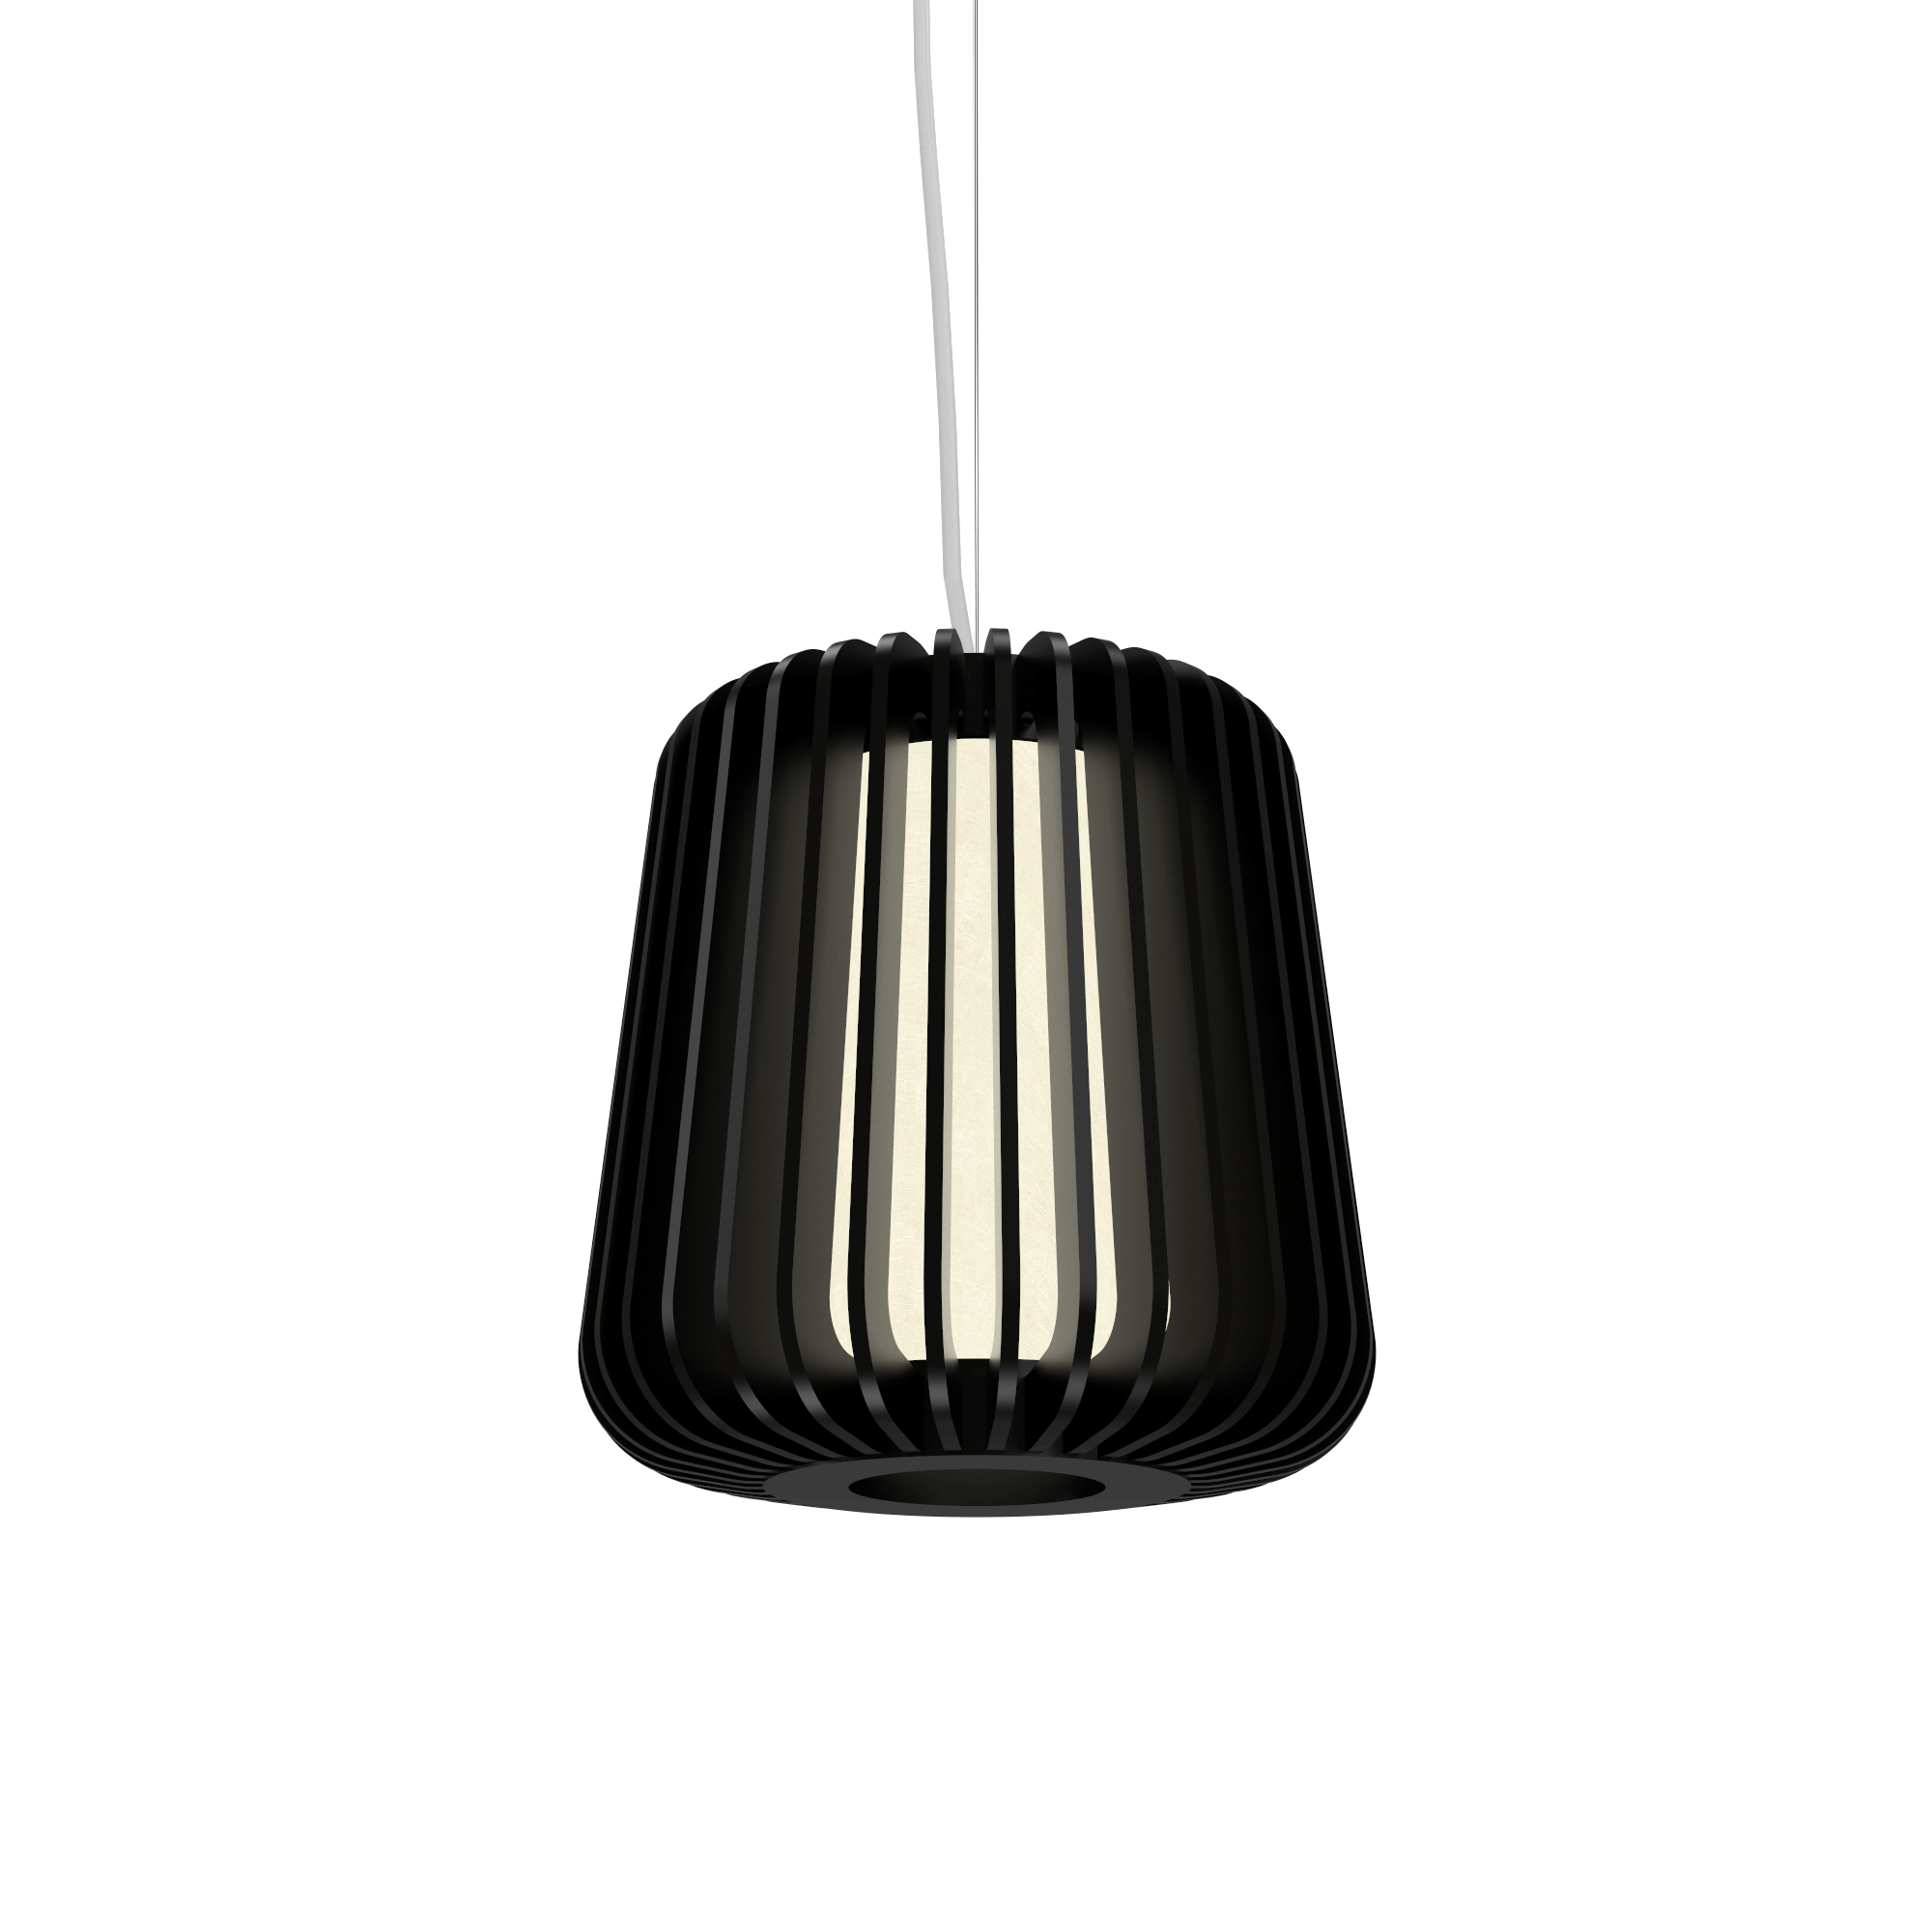 Pendant Lamp Accord Stecche Di Legno 1426 - Stecche Di Legno Line Accord Lighting | 02. Matte Black